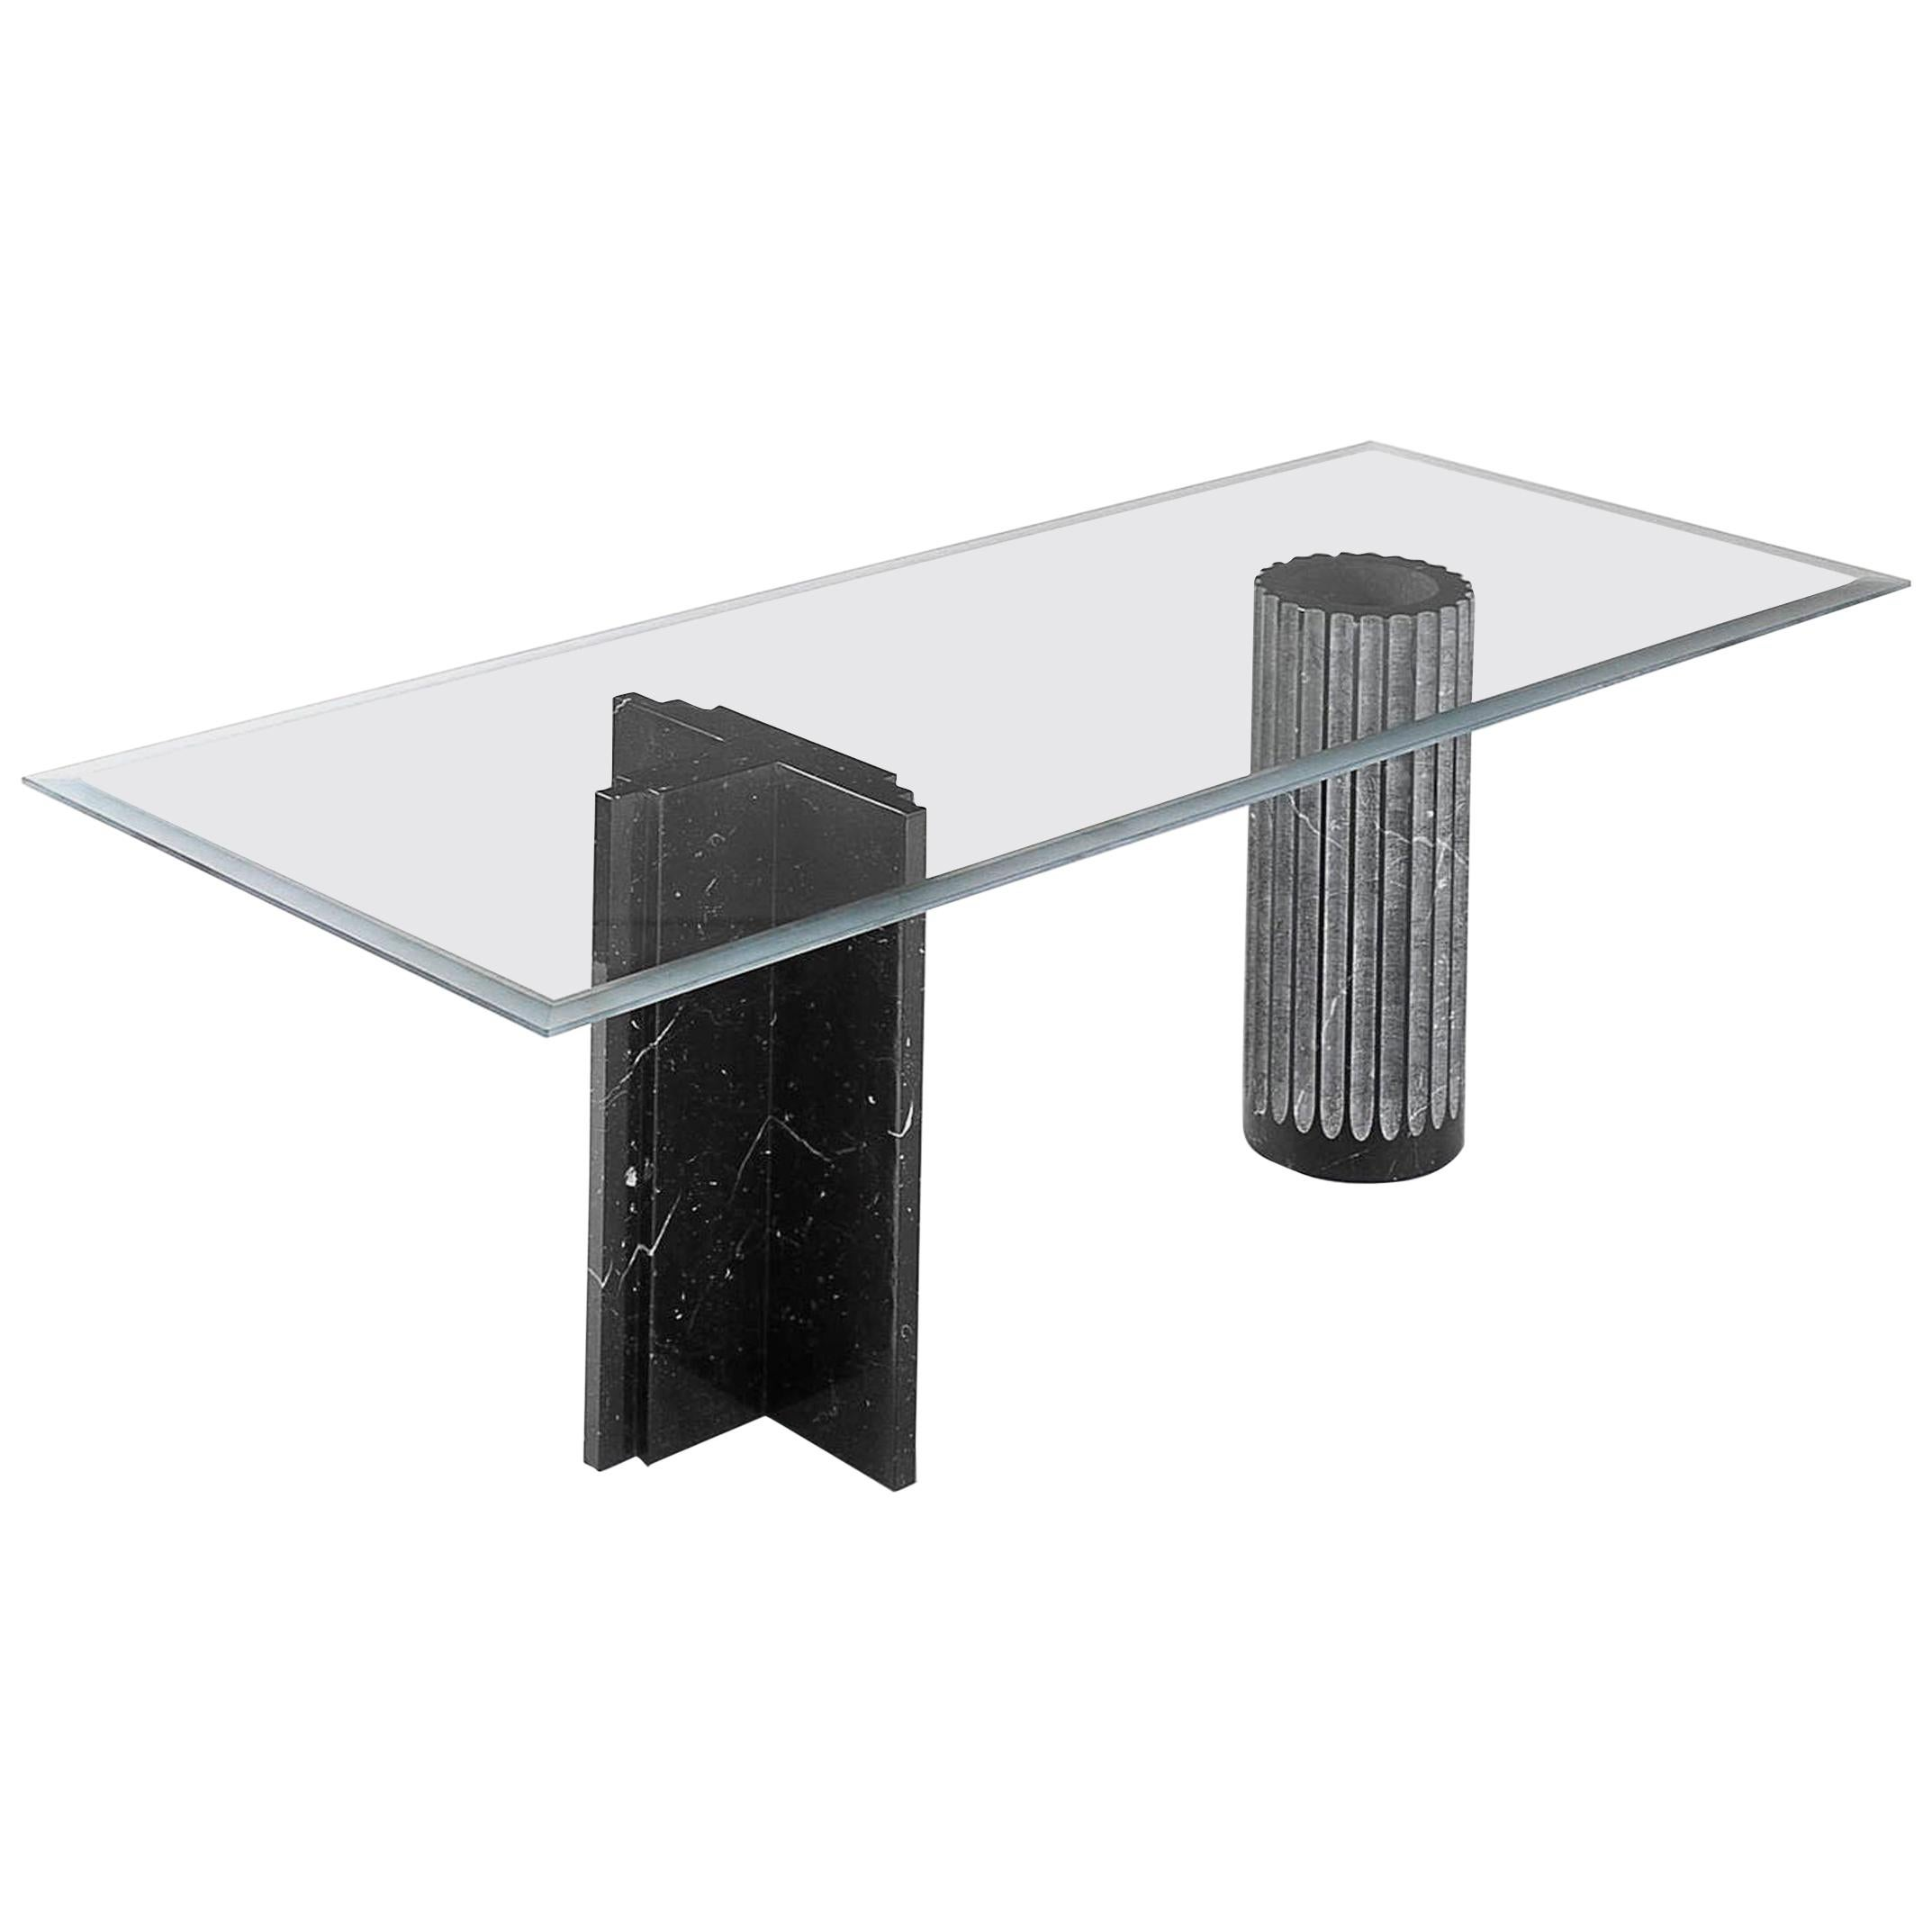 'Antiquaria' Dining Table in Marble by Adolfo Natalini